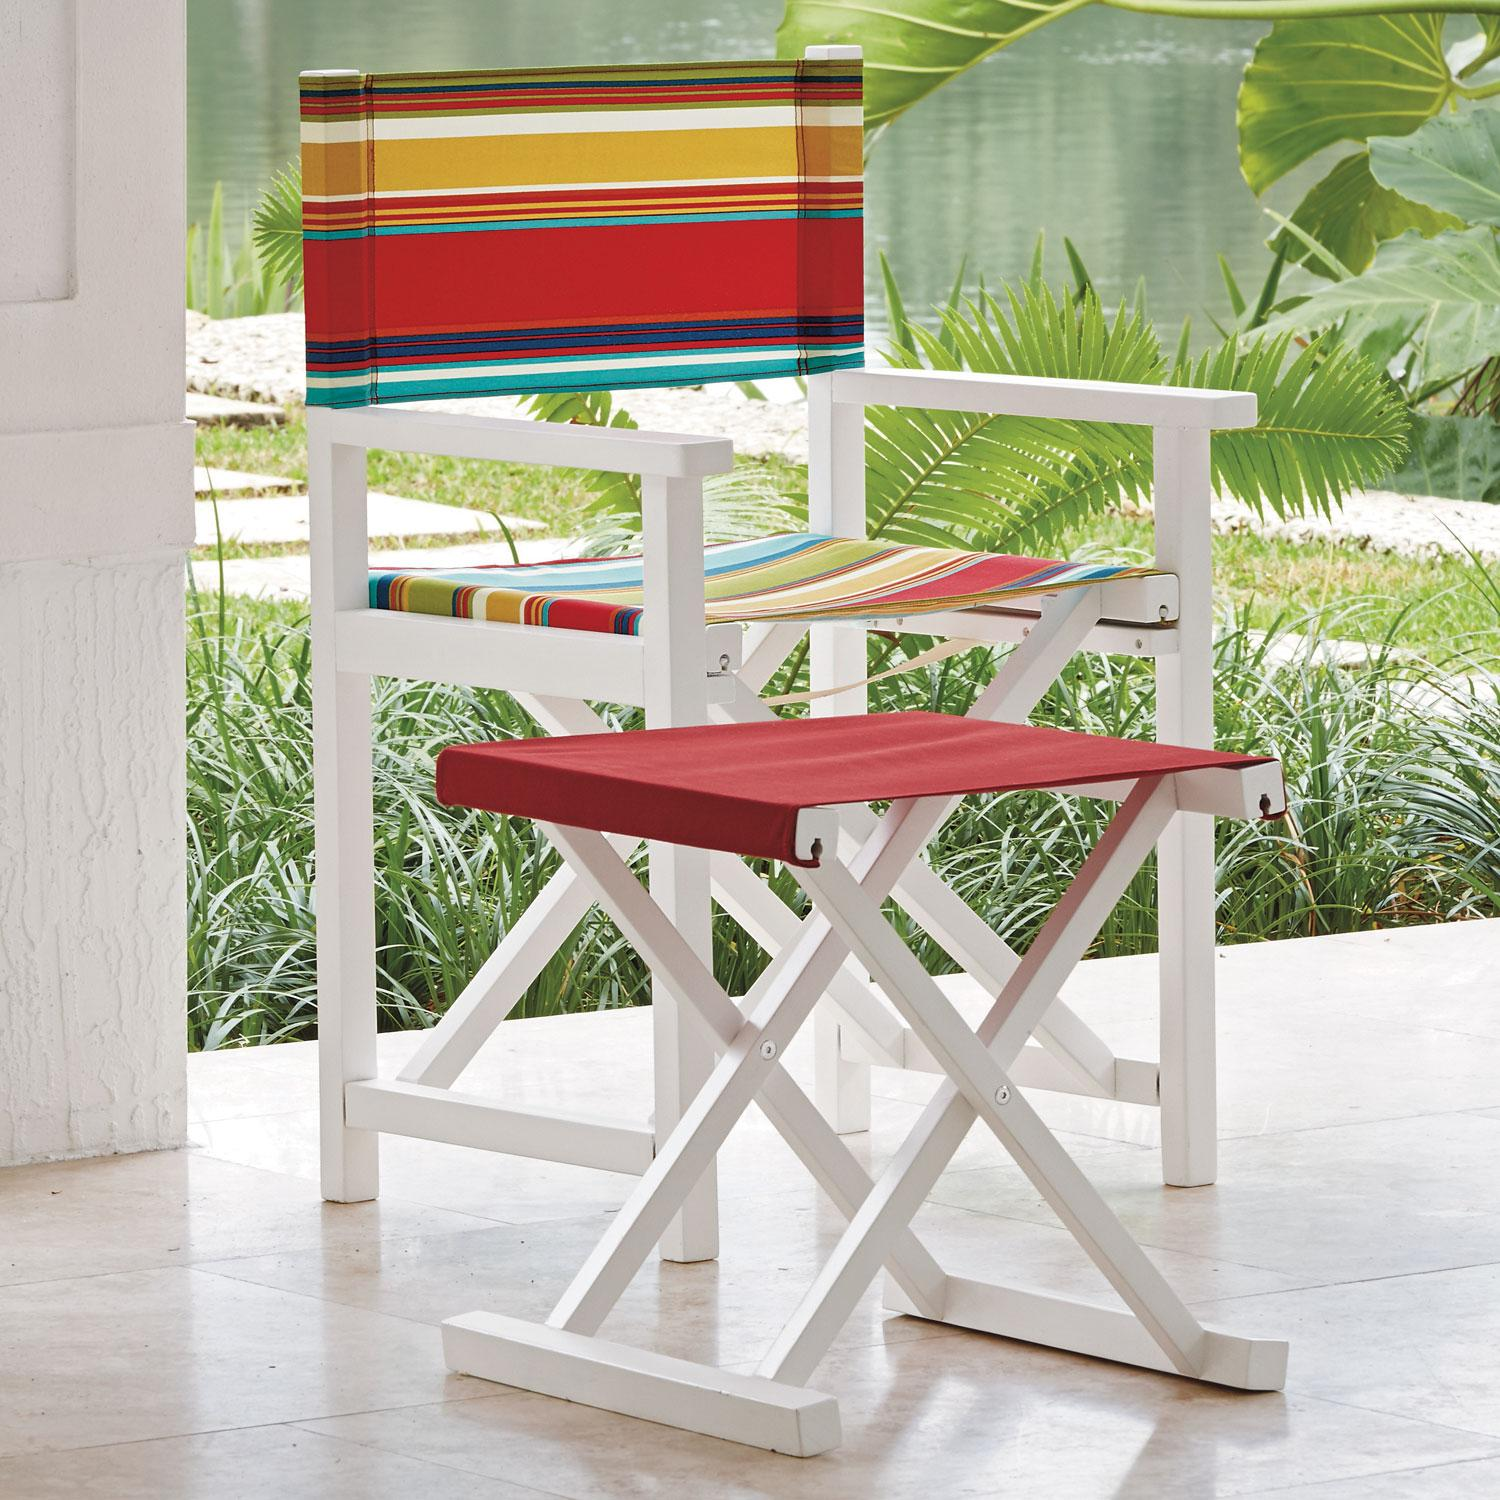 Outdoor Directors Chair Company Store